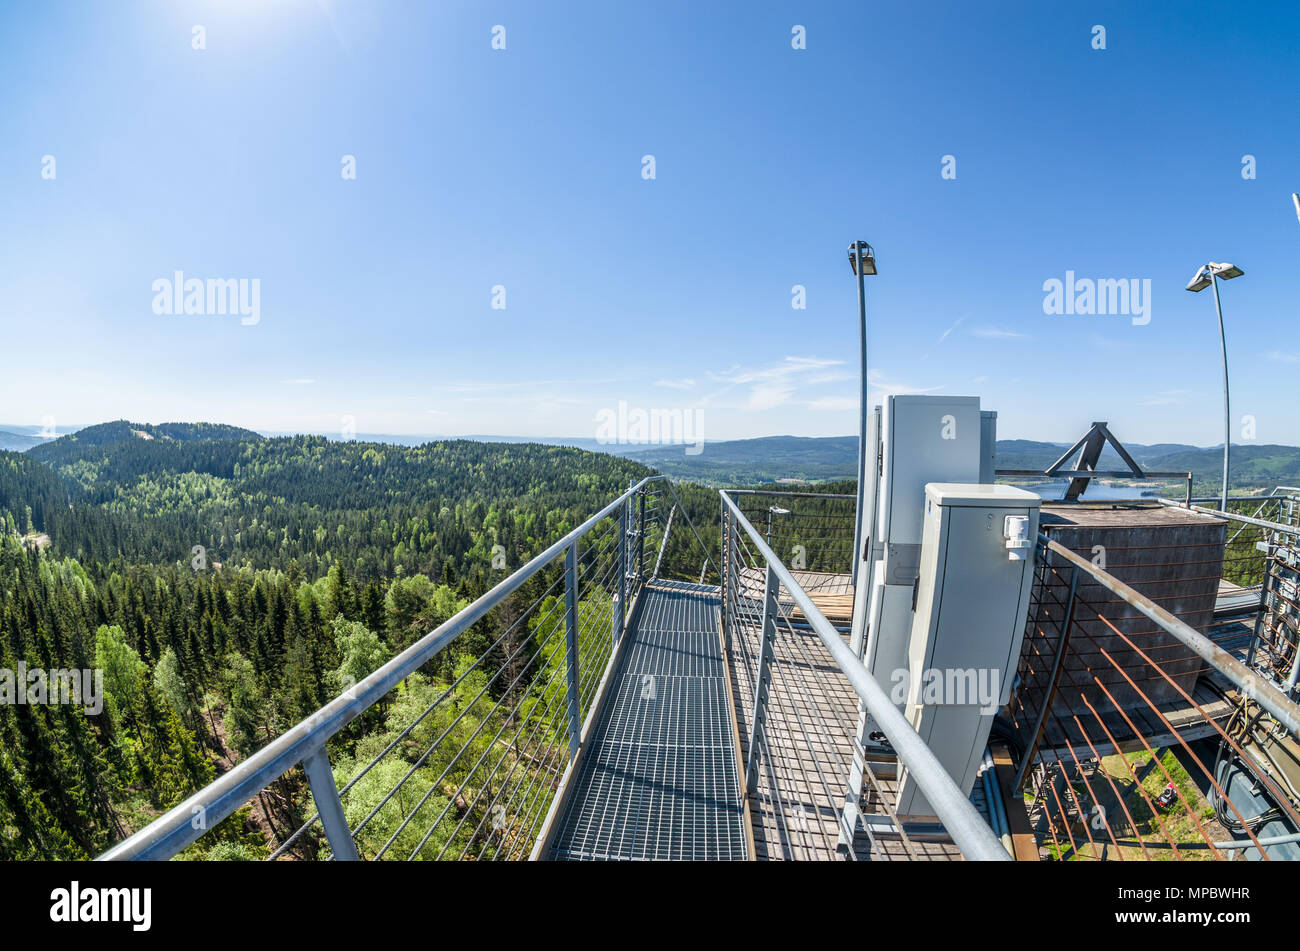 Linderud ski jumping tower out of season in late spring sunny day. - Stock Image